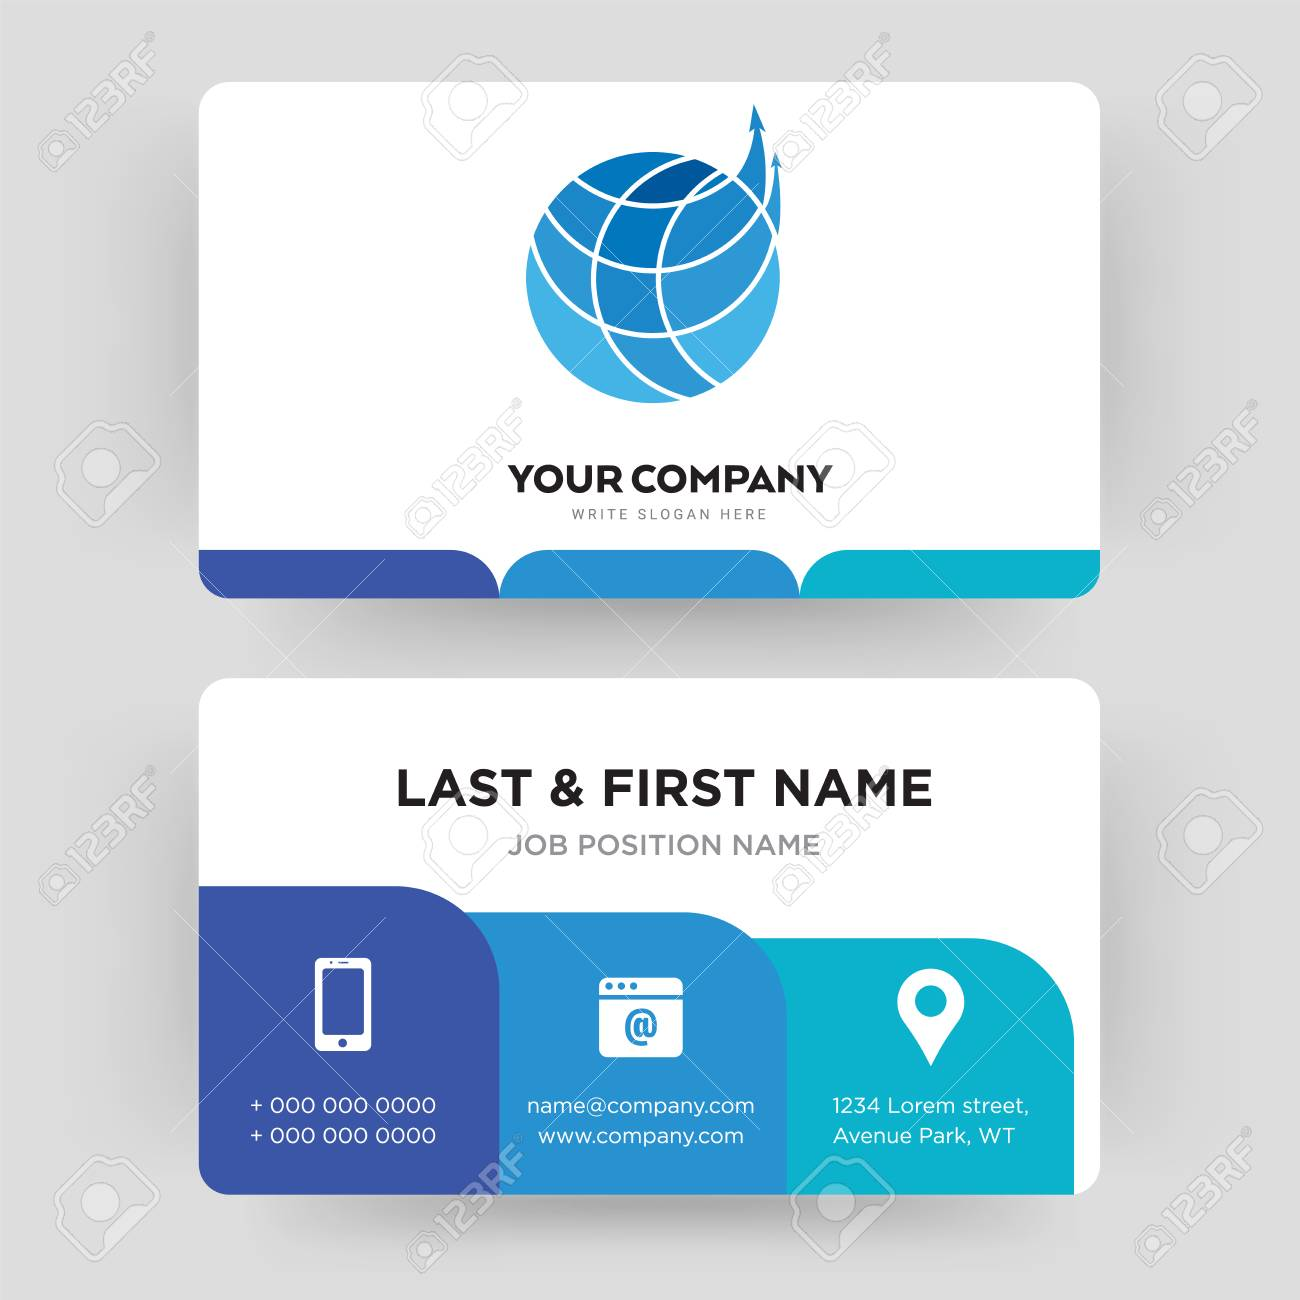 Logistics Company Business Card Design Template Visiting For